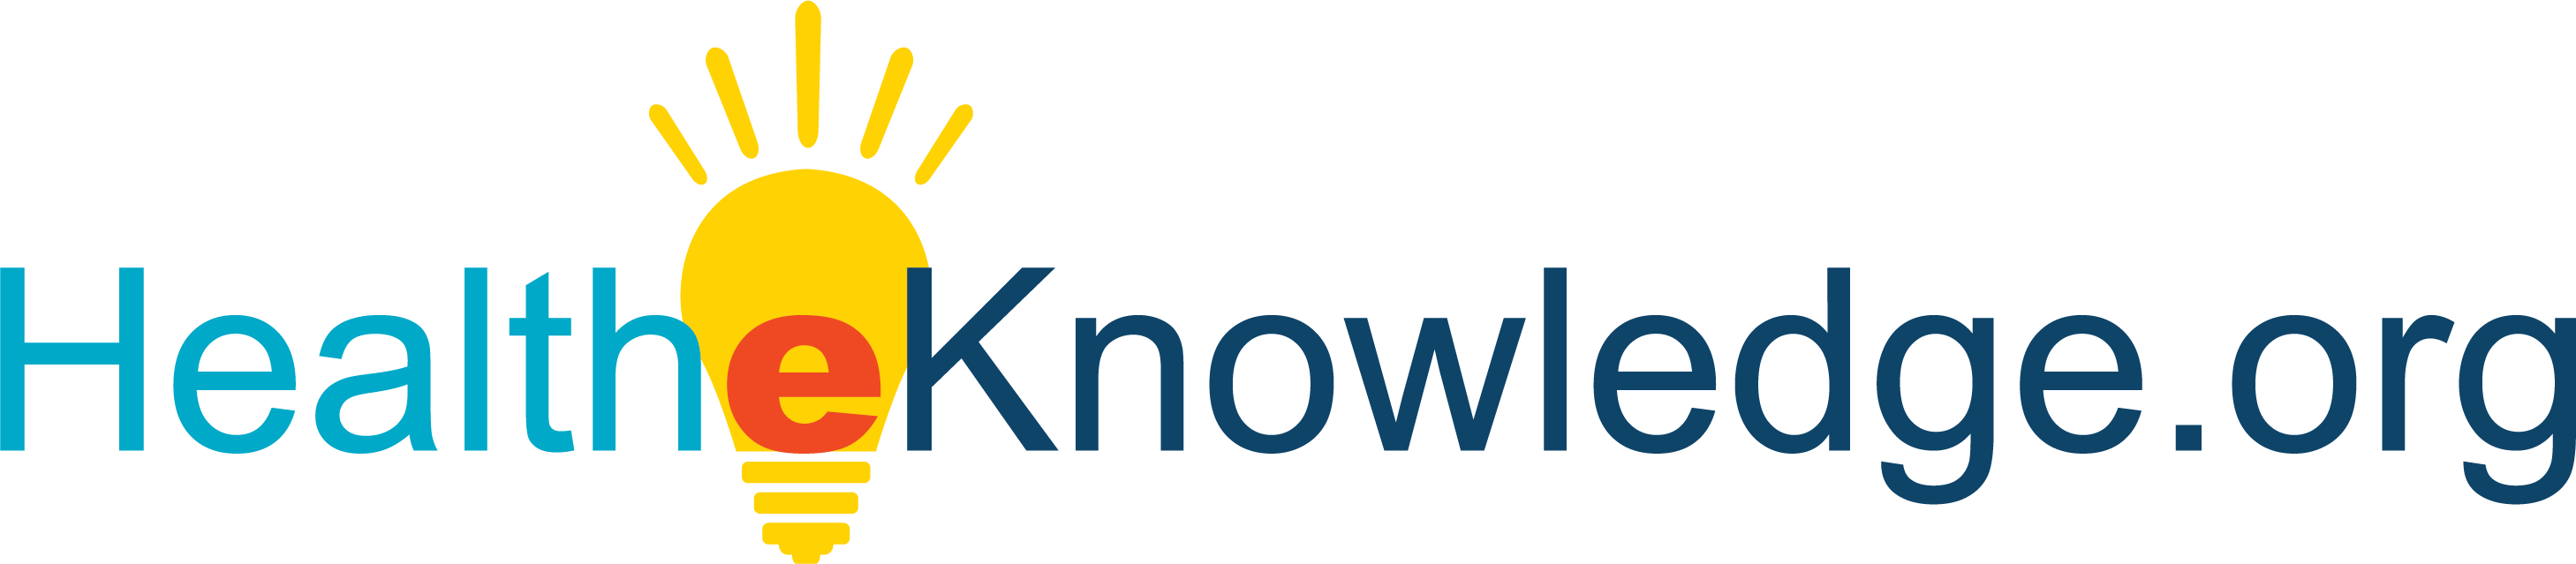 HealtheKnowledge logo